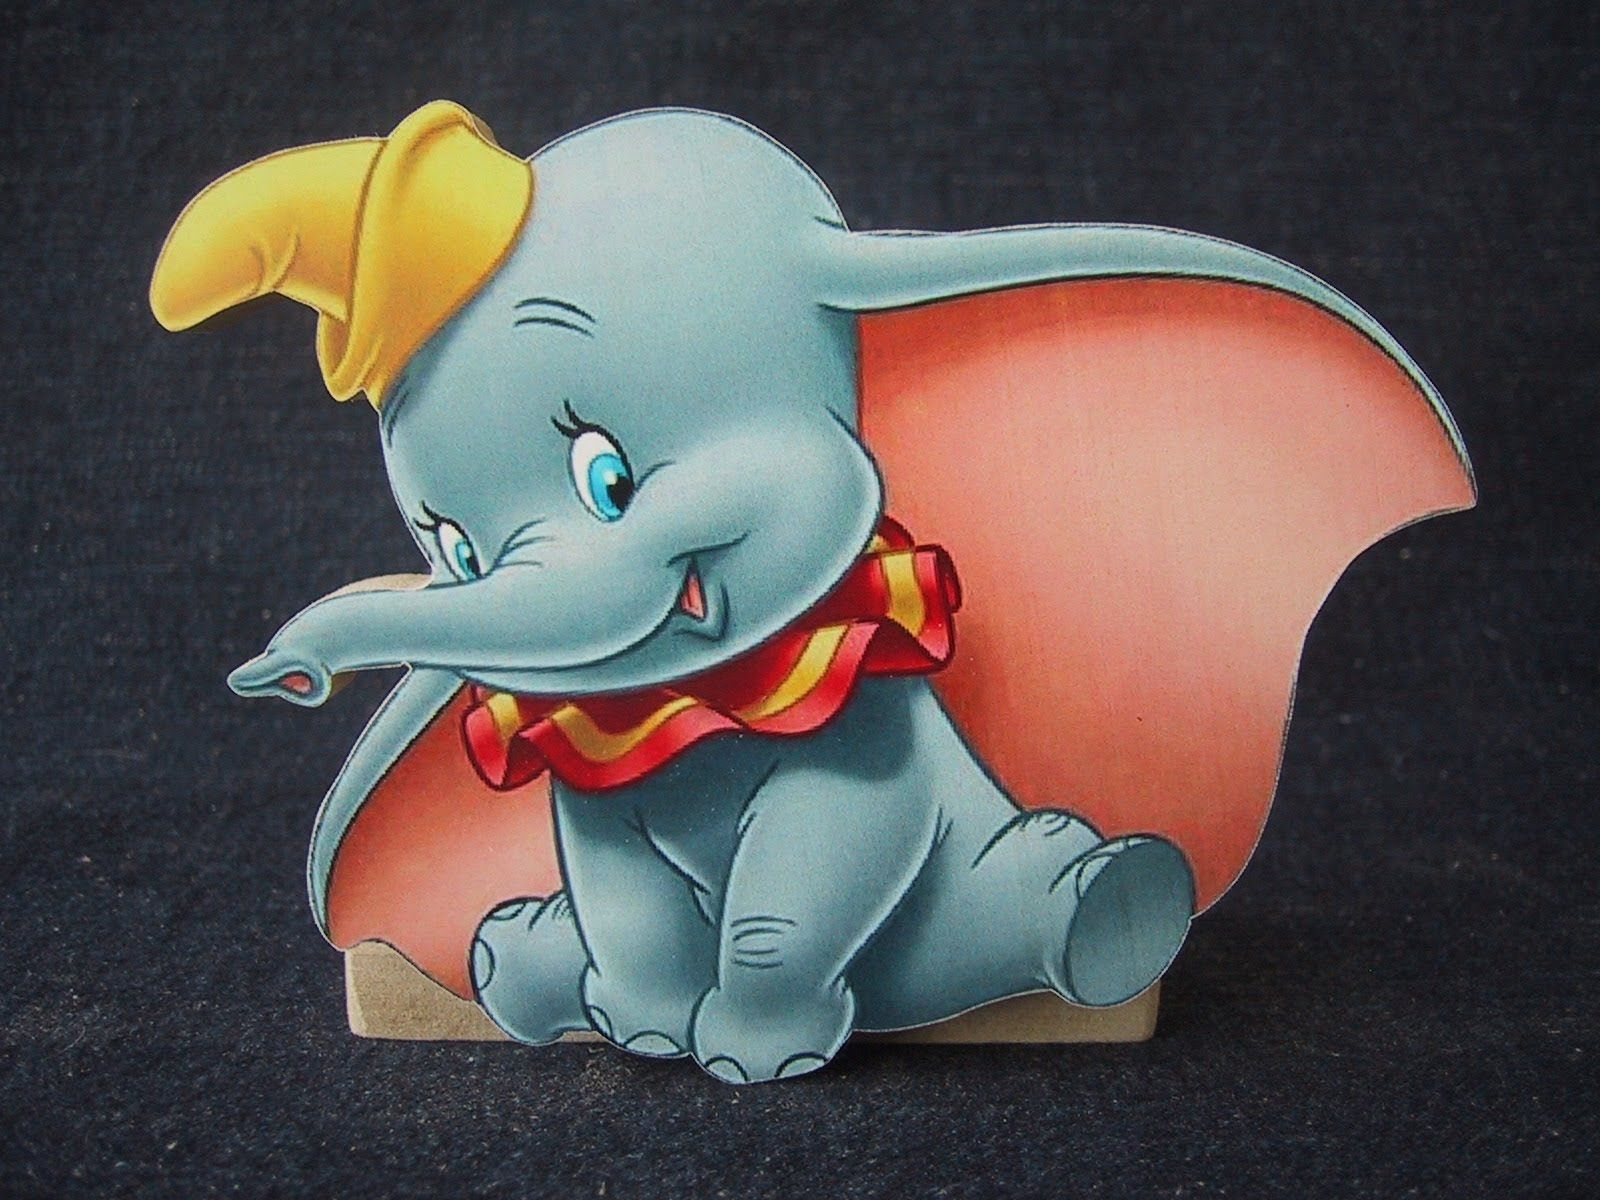 free printable pictures of dumbo the elephant | imagens ...